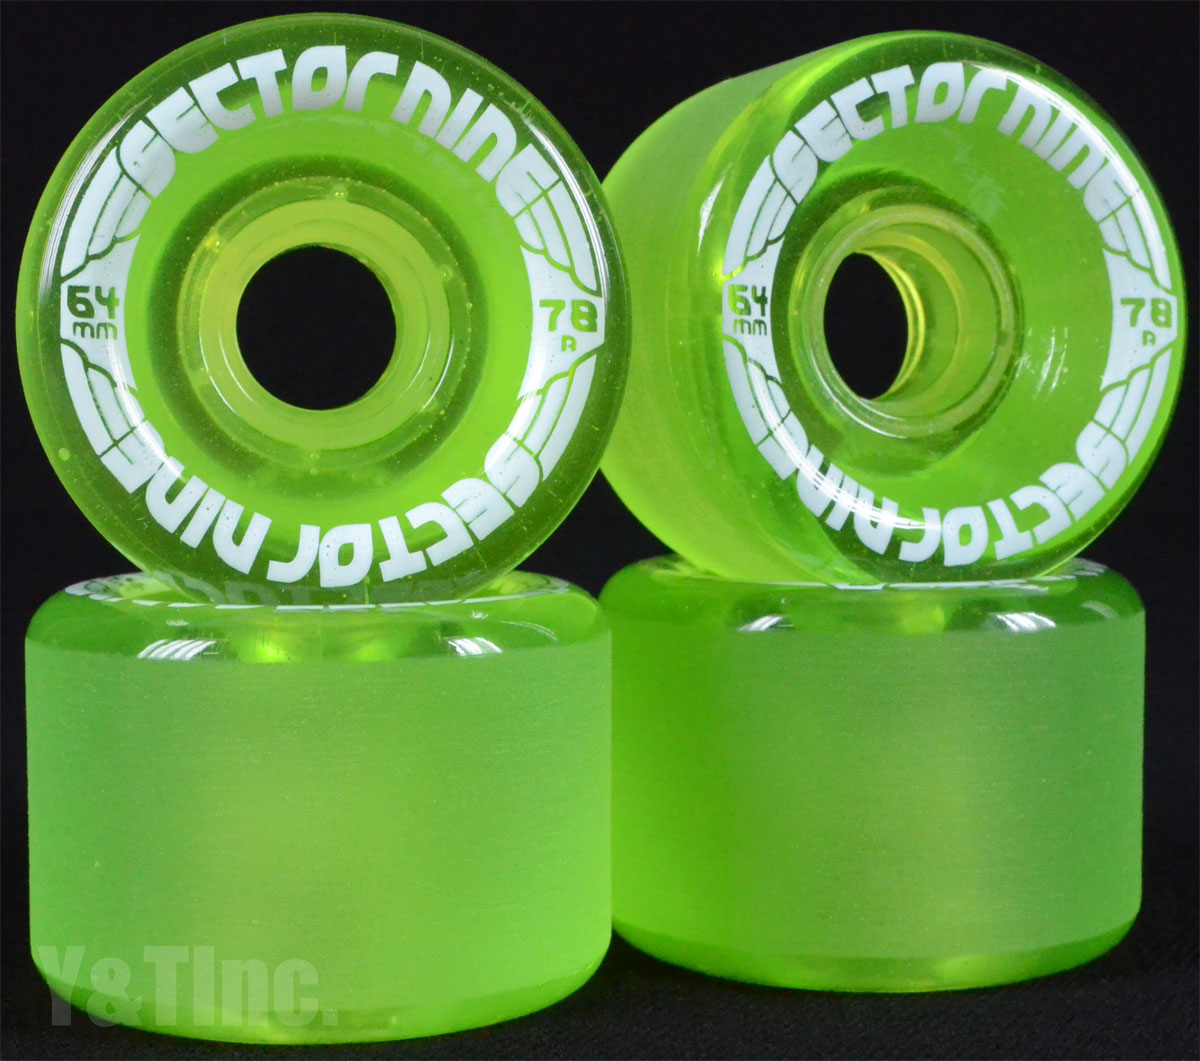 SECTOR9 NINE BALL 64mm 78a Clear Green 1